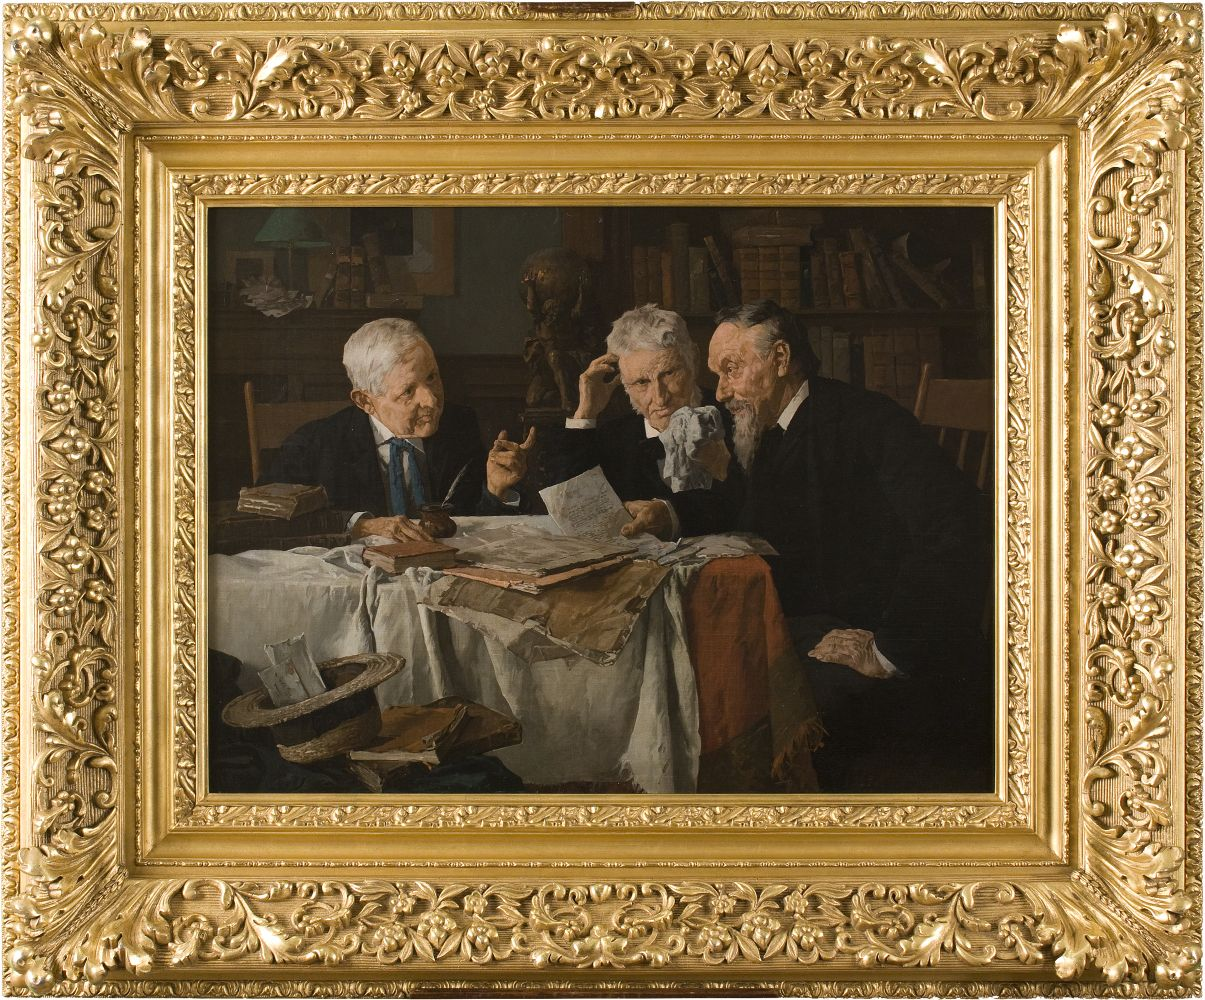 Louis Charles Moeller (1855–1930), A Discussion, c. 1890, oil on canvas, 18 x 24 in., signed indistinctly lower right: Louis Moeller N. A. (framed)